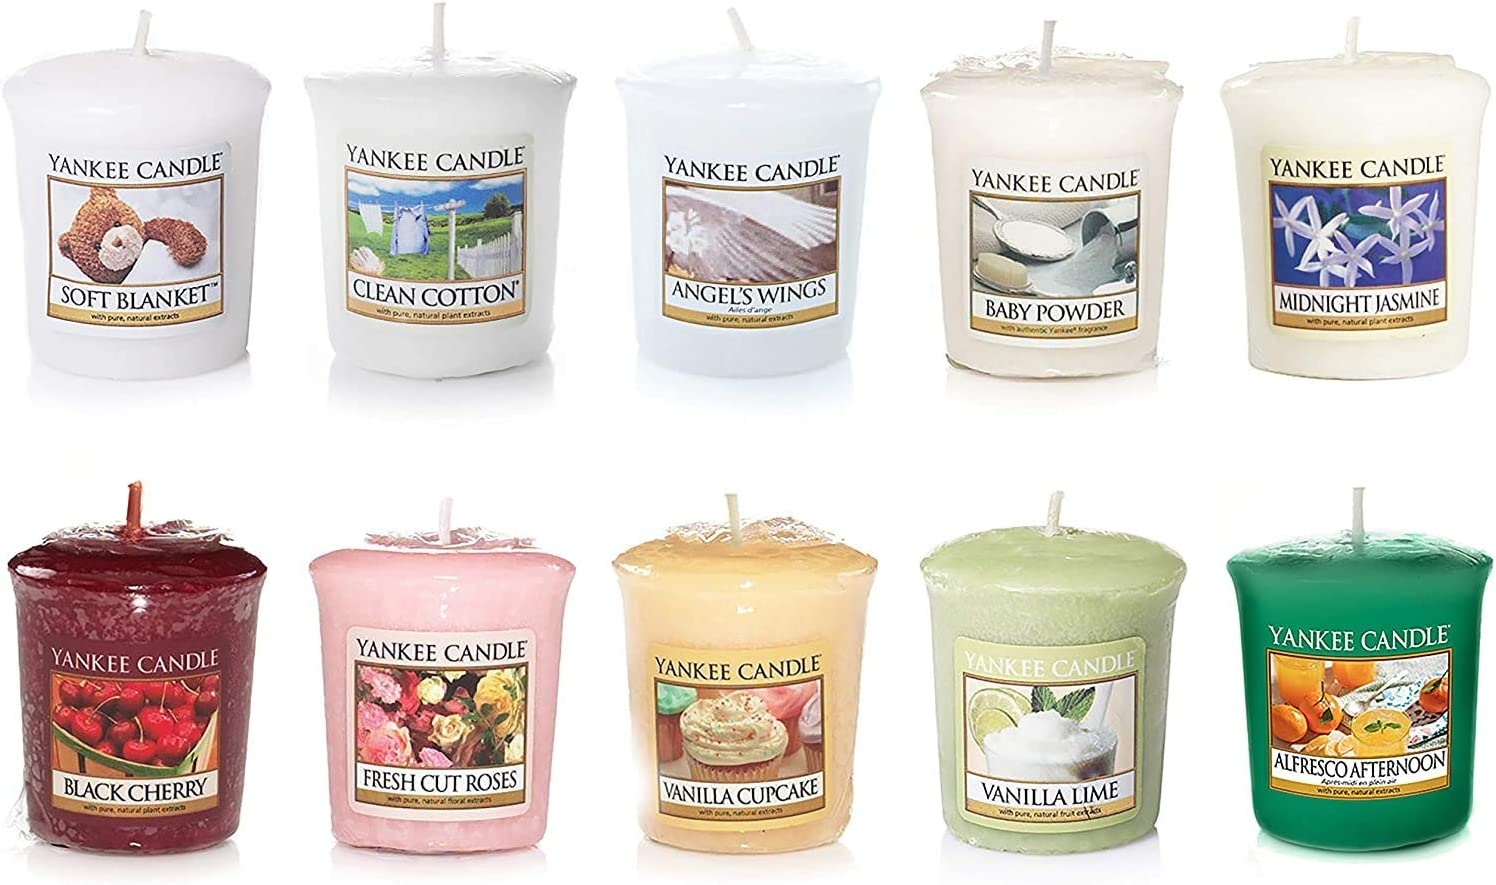 Yankee Candle Value Bundle with Candles Easy-to-use Votive Mixed 10 Scented Columbus Mall